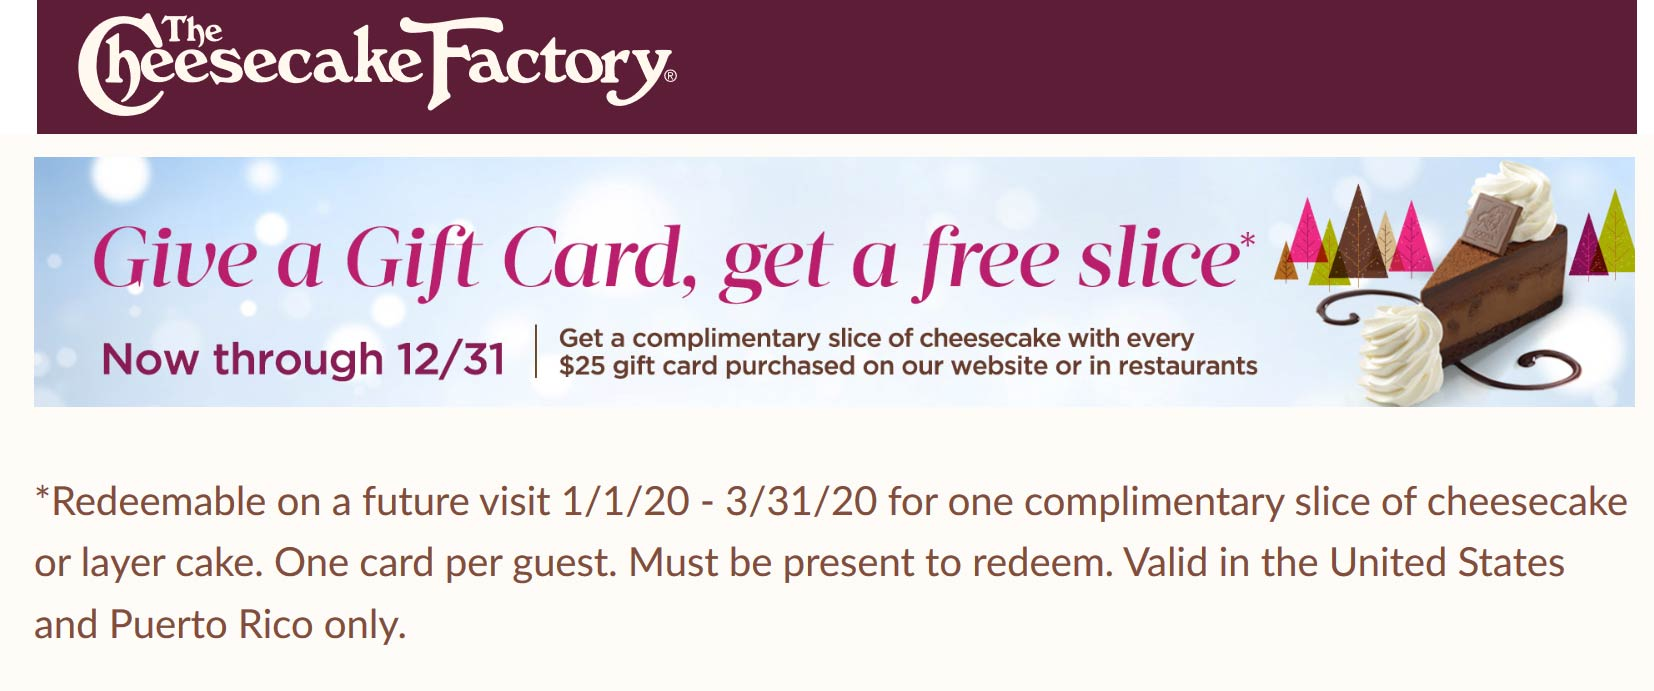 Cheesecake Factory Coupon January 2020 Free slice with every $25 gift card at The Cheesecake Factory